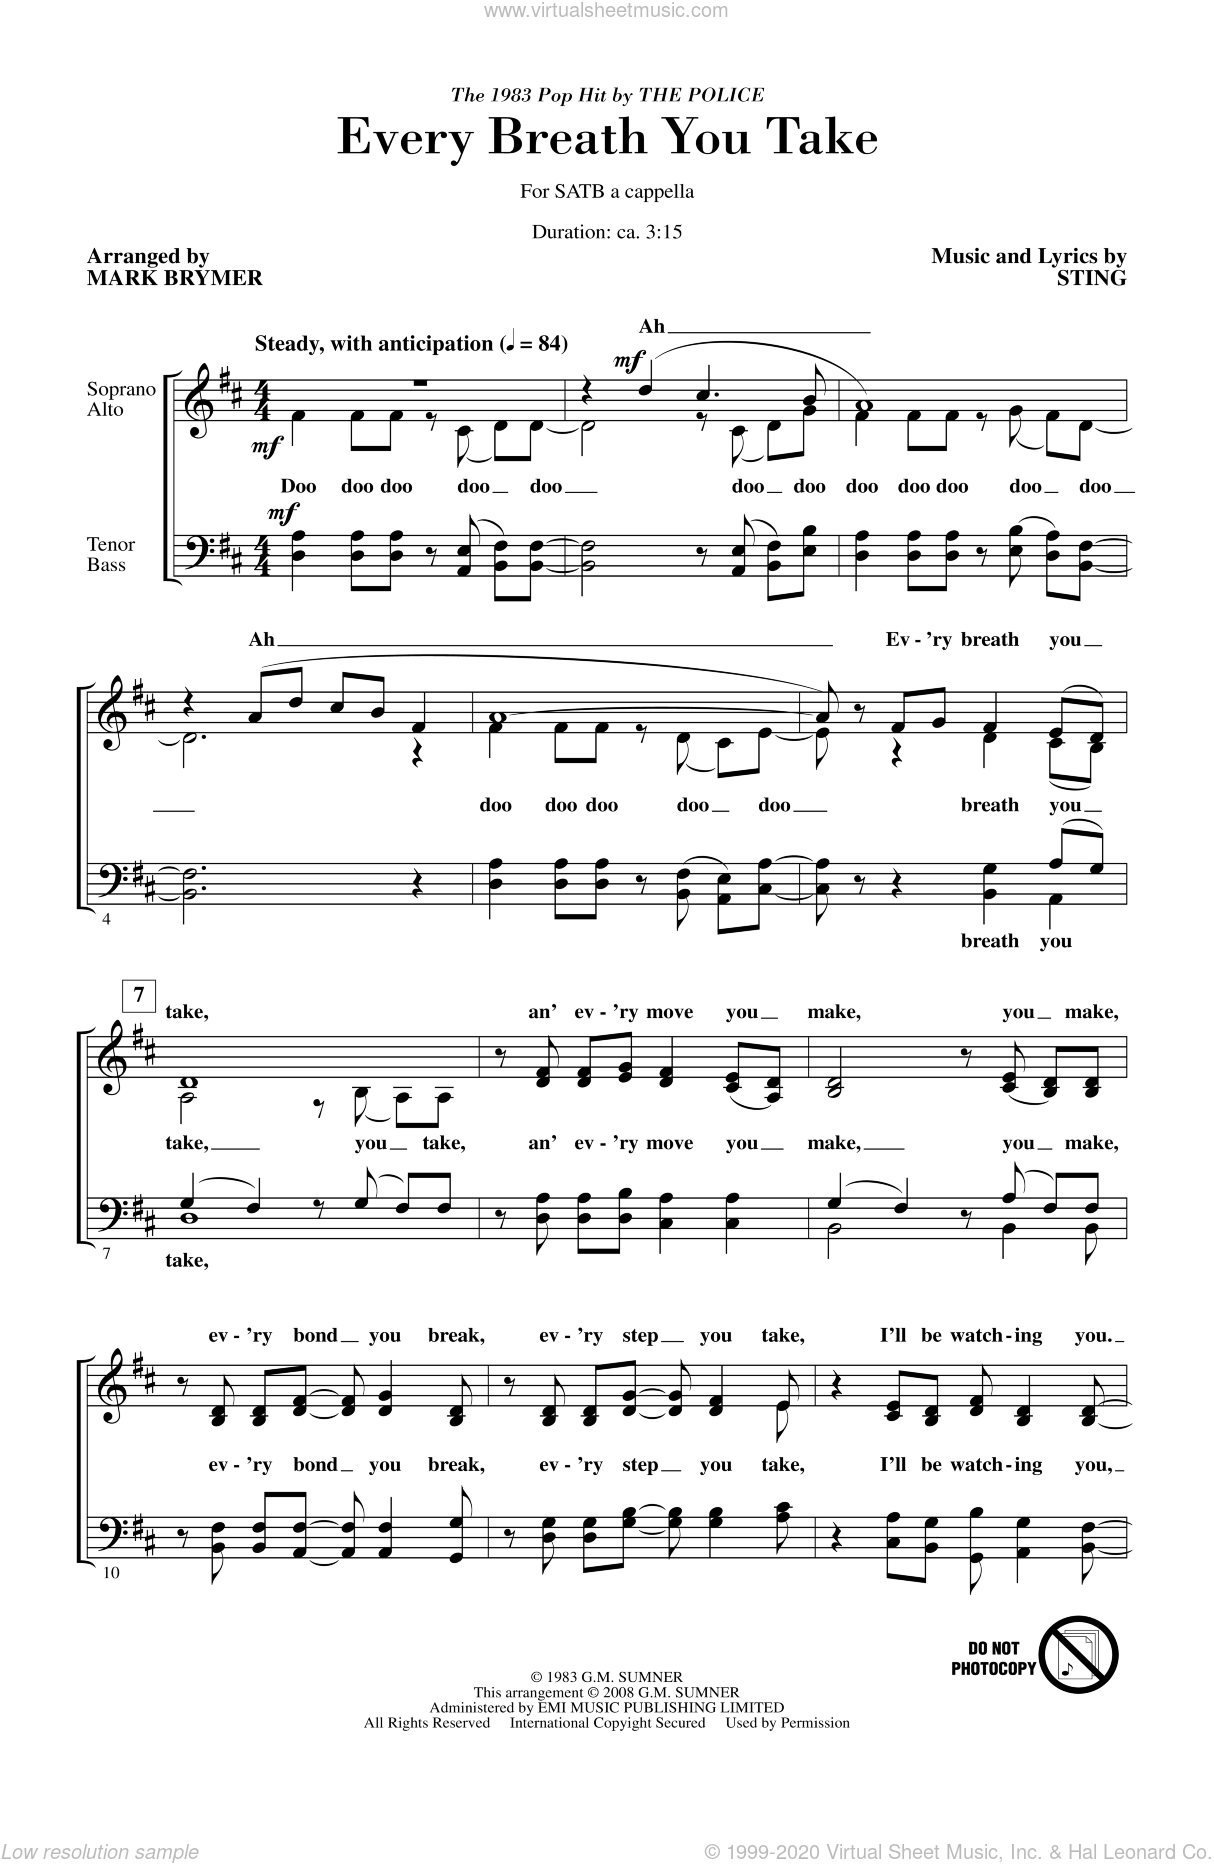 Every Breath You Take sheet music for choir and piano (SATB) by Mark Brymer